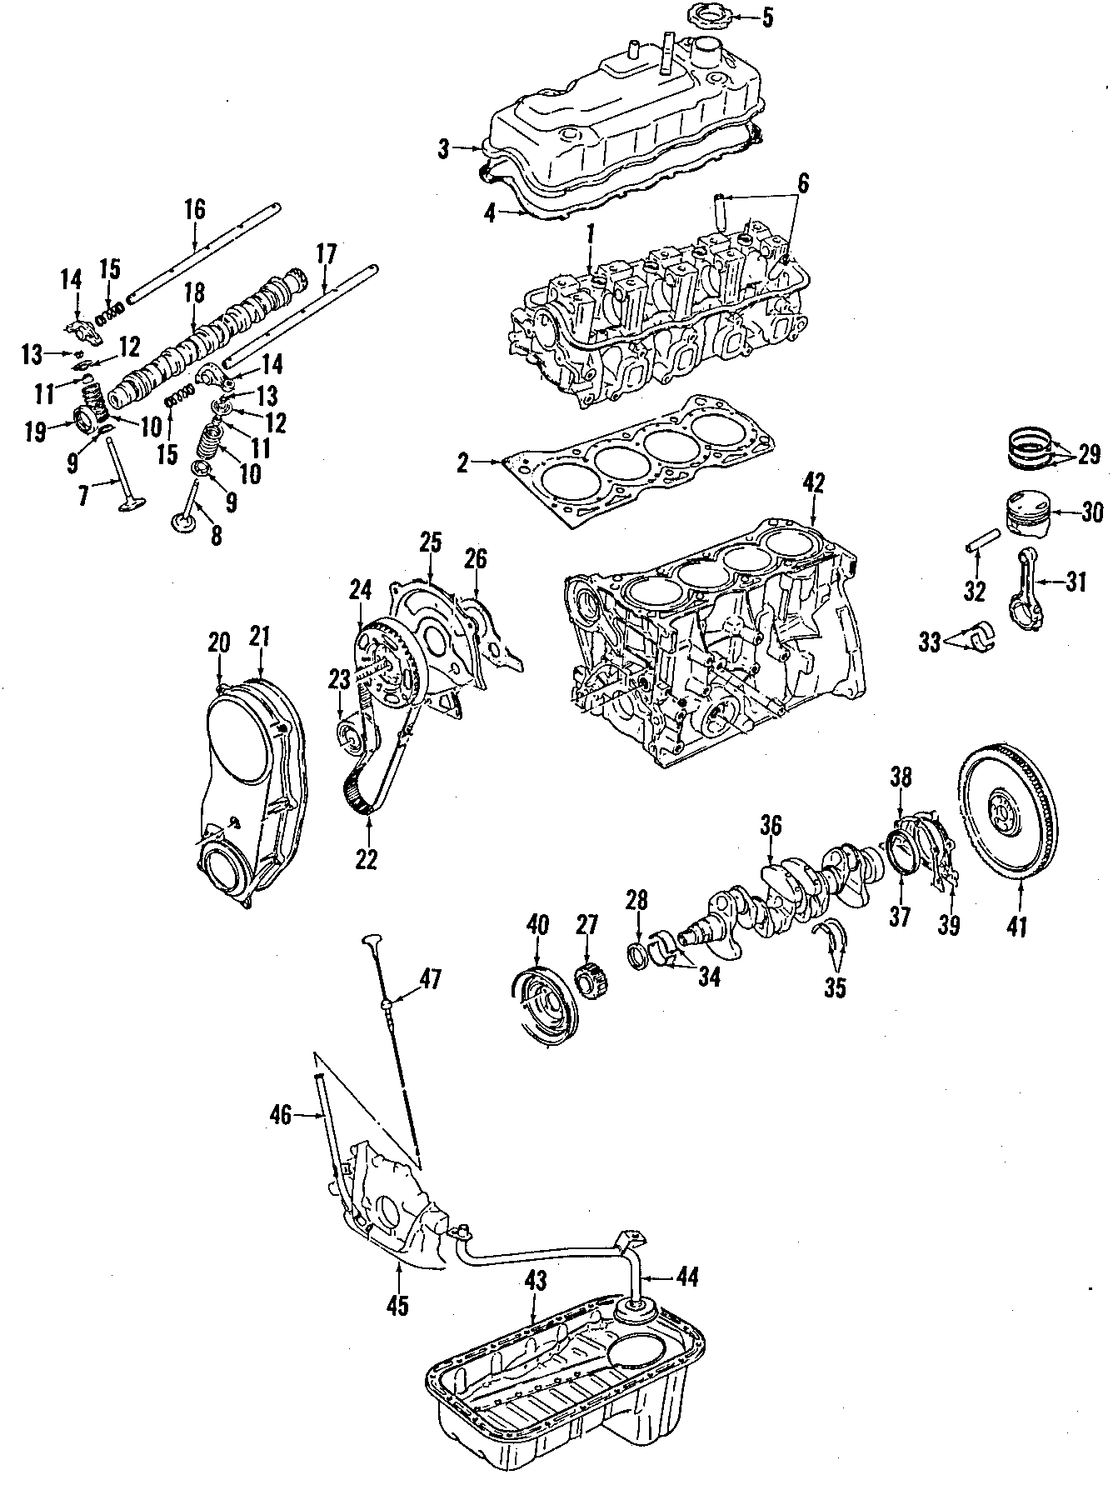 camshaft engine diagram get image about wiring diagram